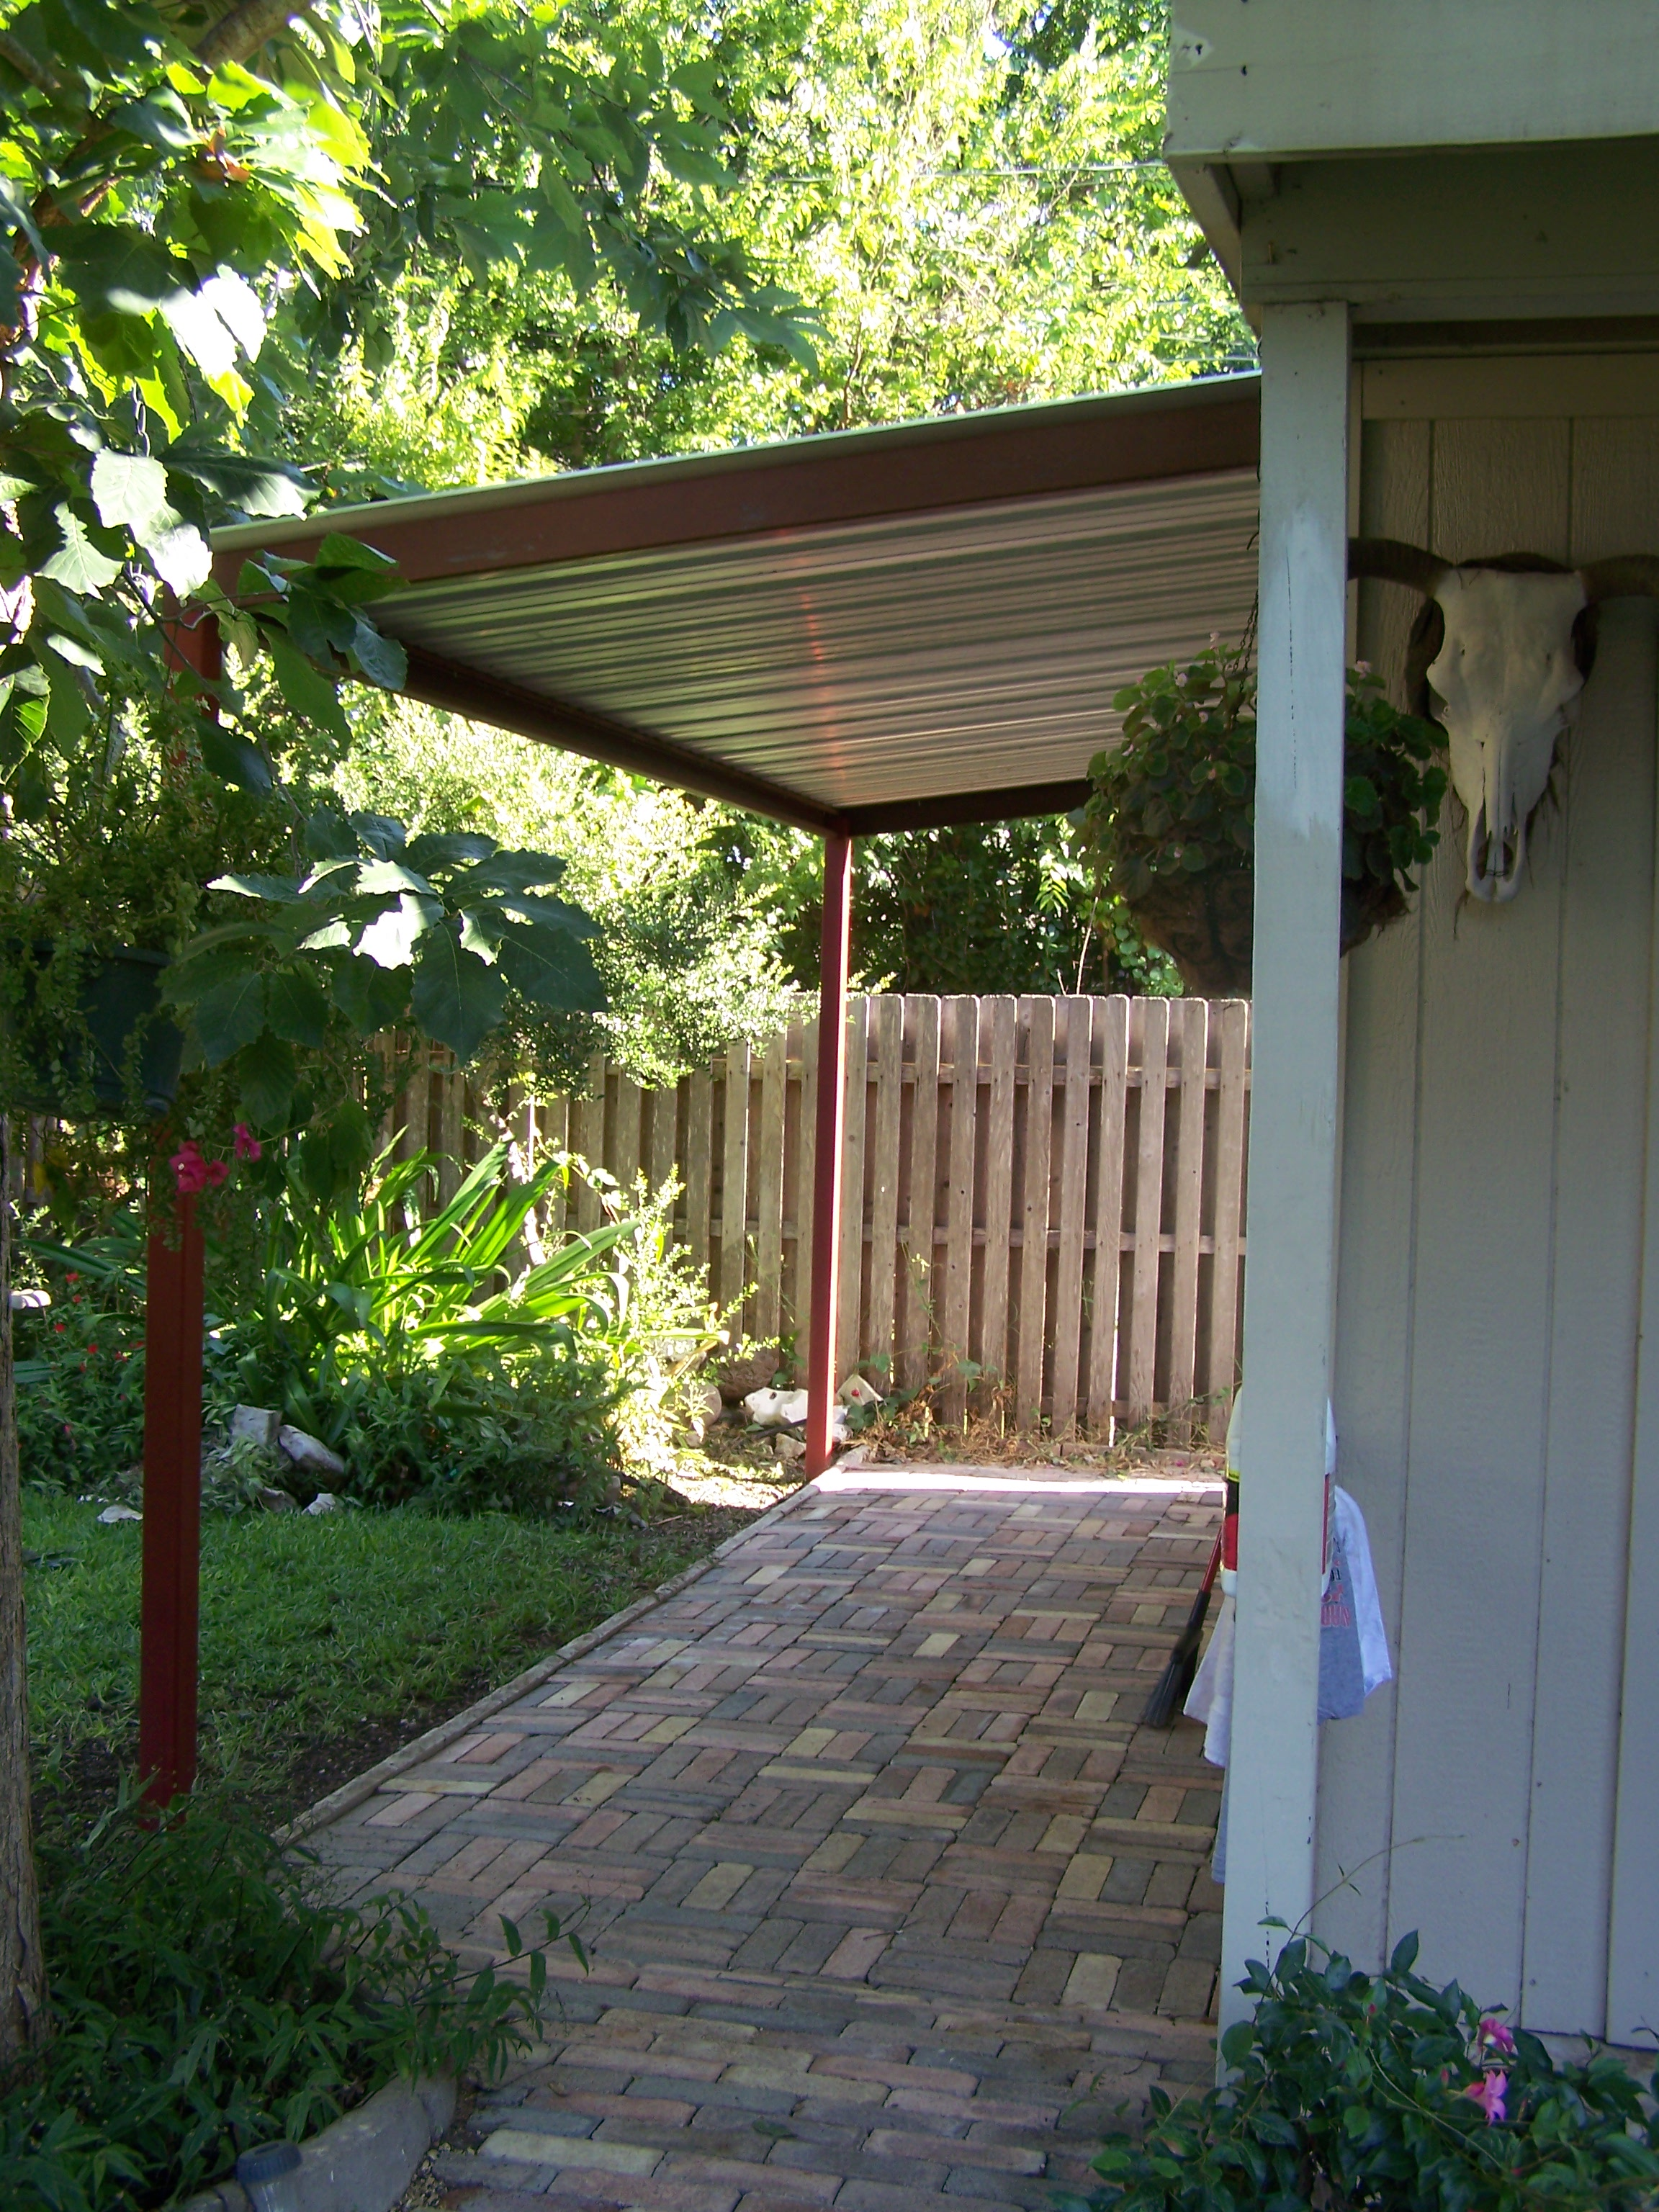 North side San Antonio Attached Steel Home Awning ...